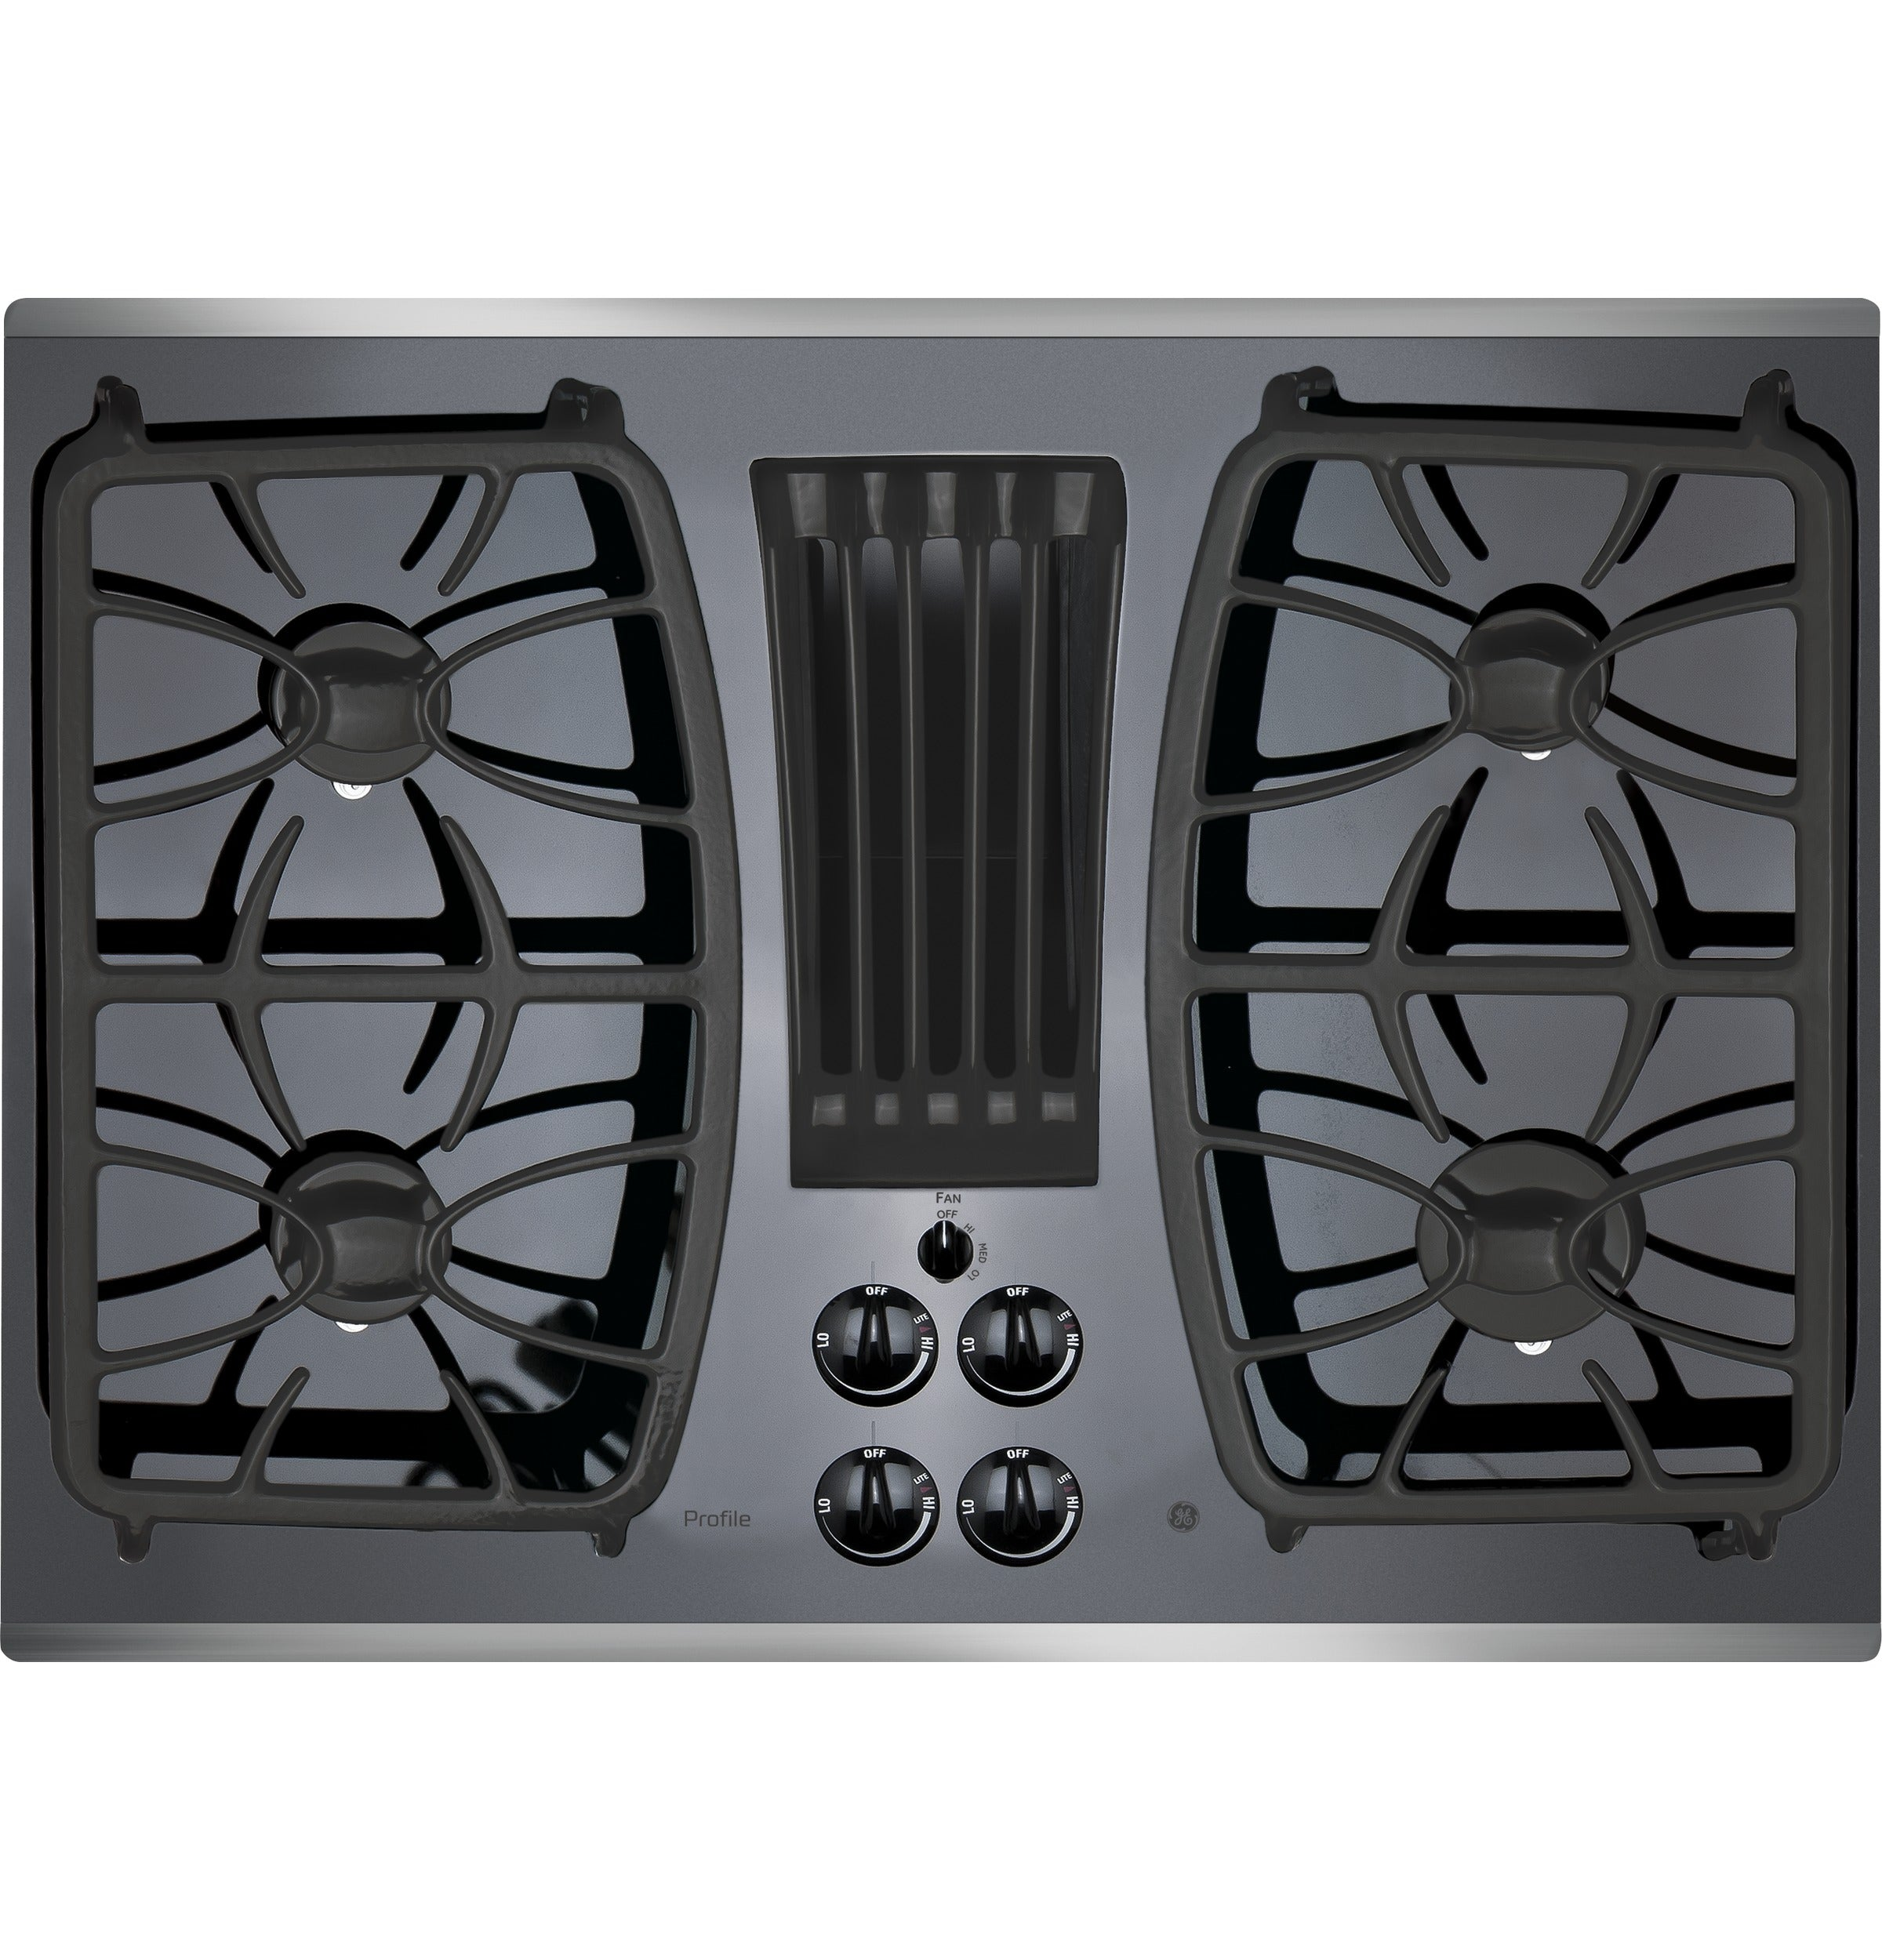 Ge Profile 30 Built In Gas Downdraft Cooktop In Stainless Steel Royal Appliances